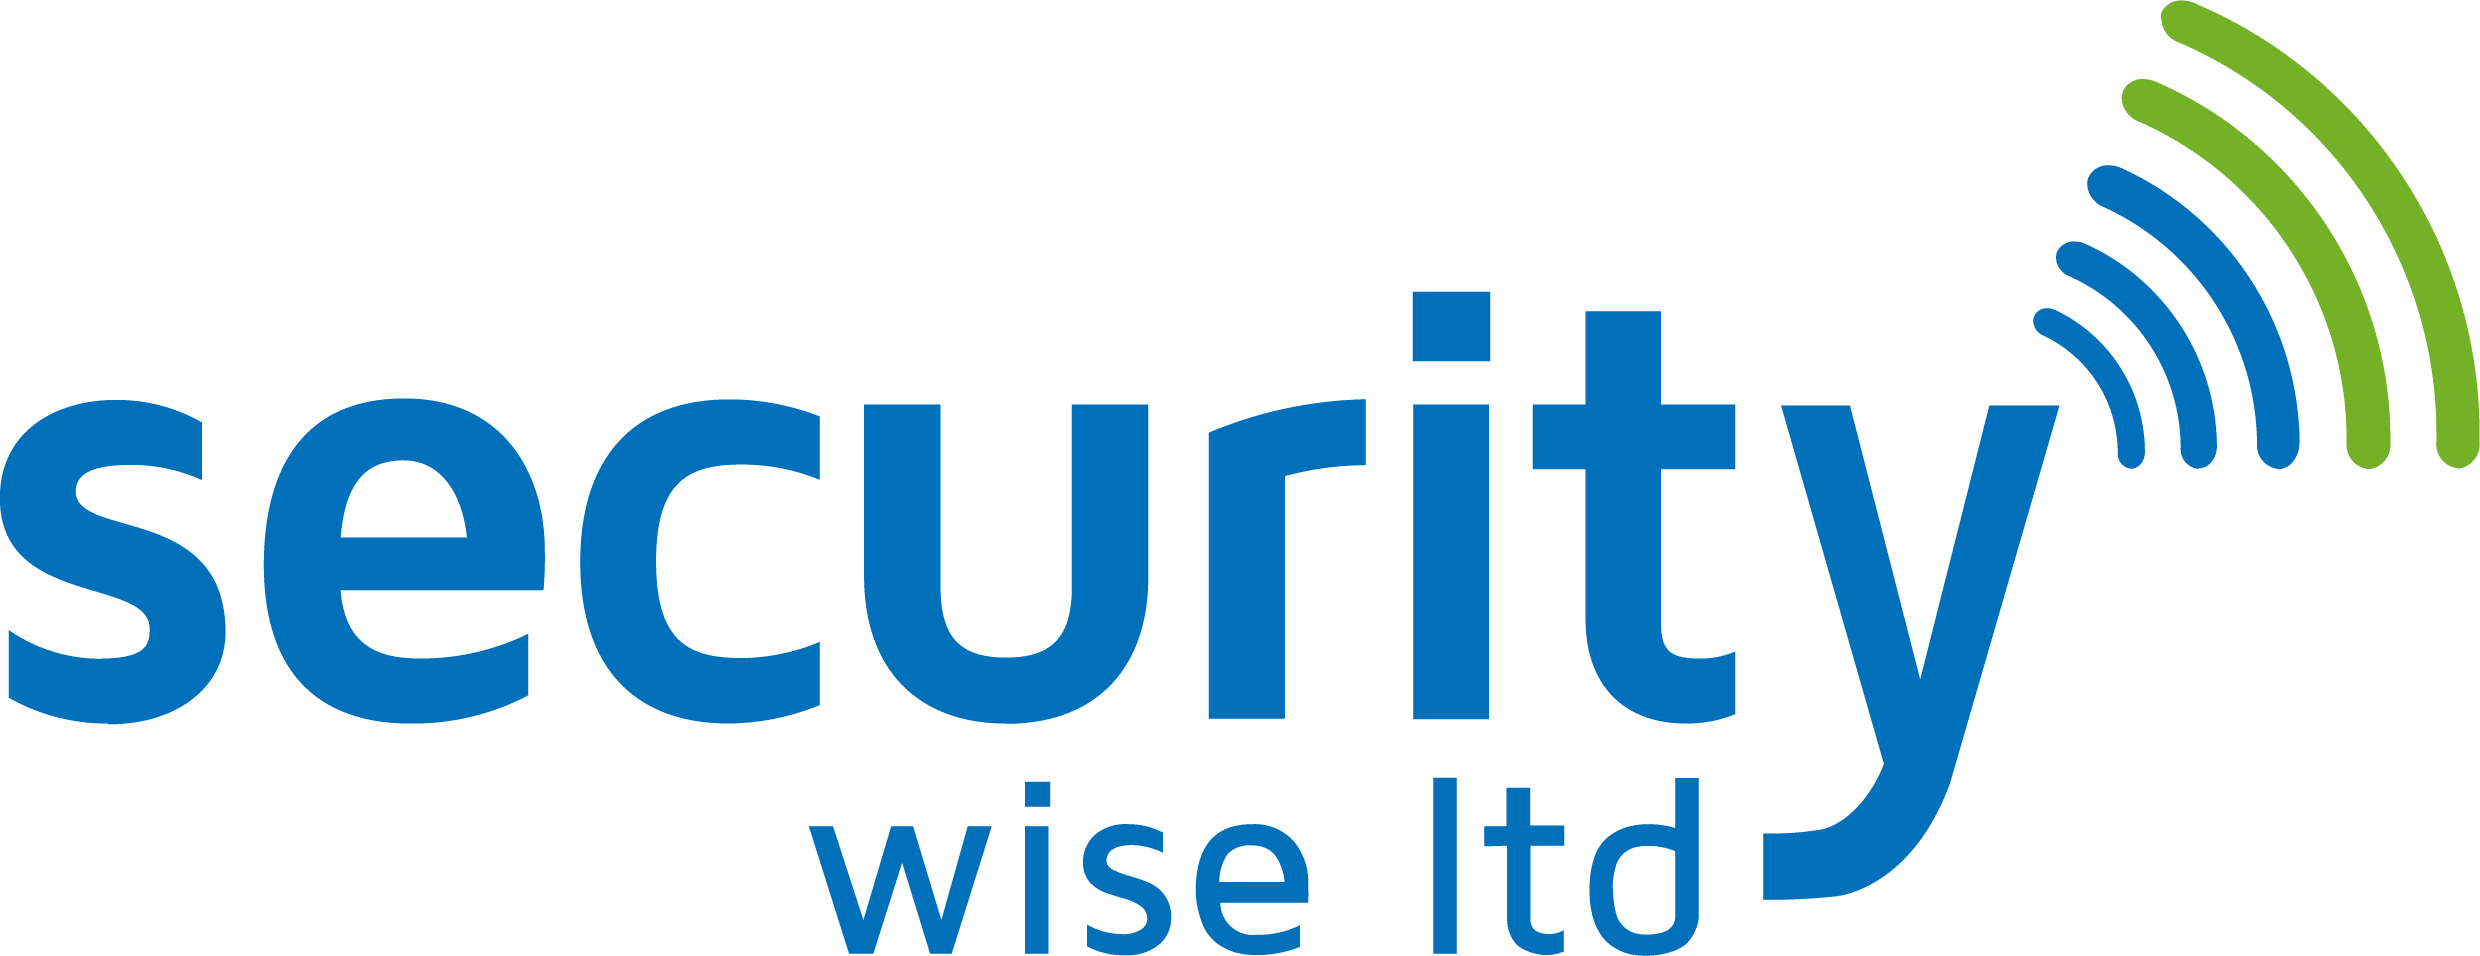 SecurityWise logo